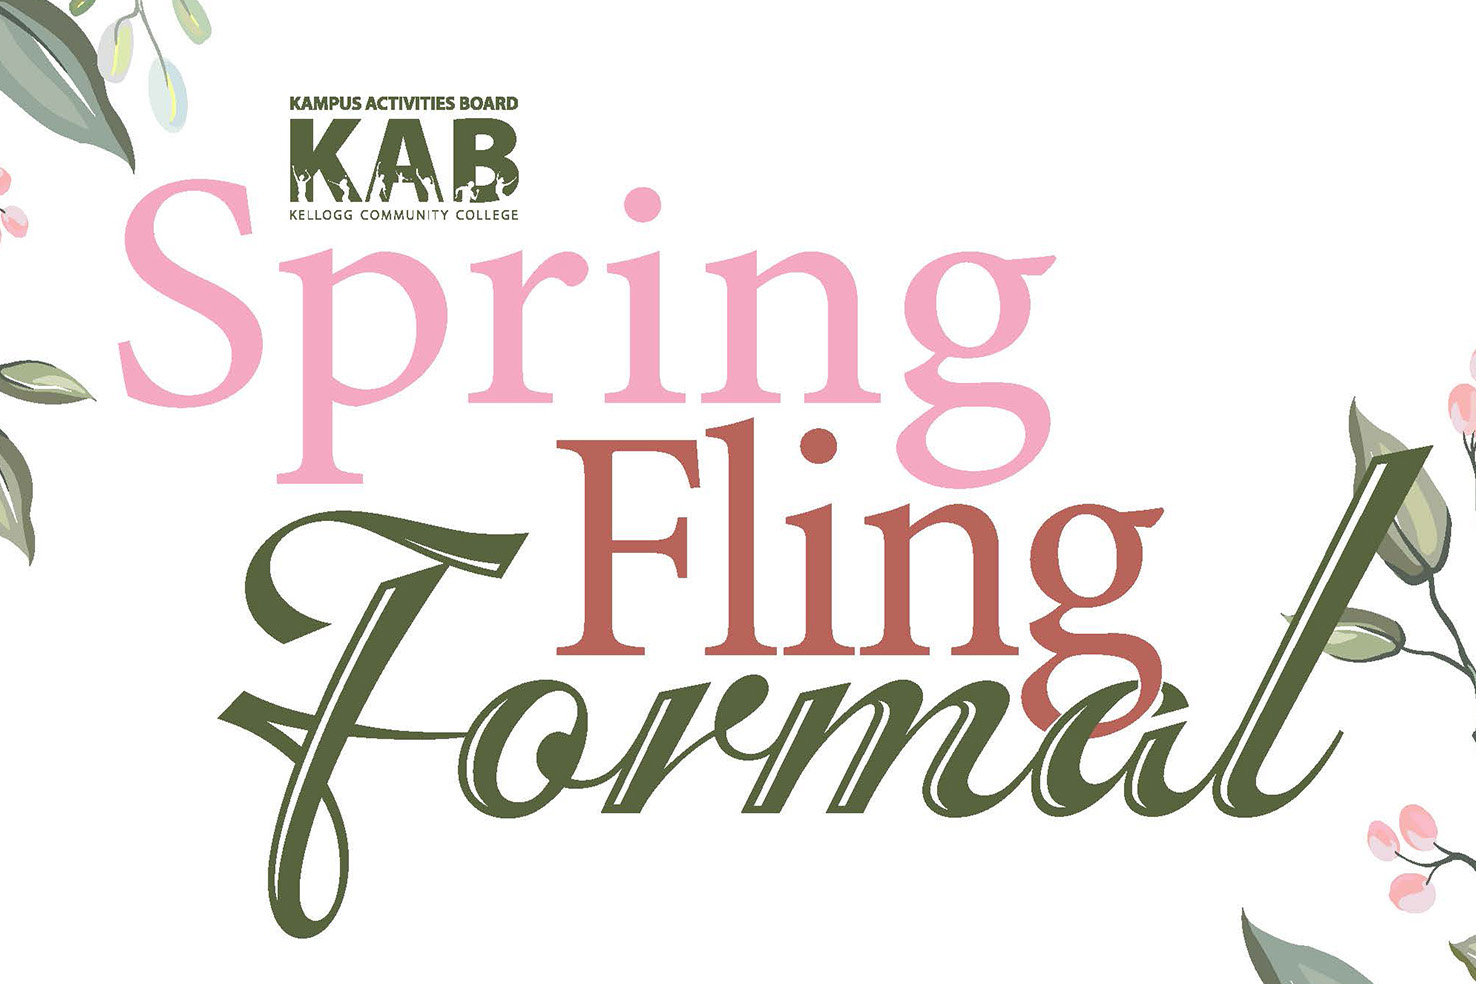 A decorative text slide that reads Spring Fling Formal with the Kampus Activities Board logo.